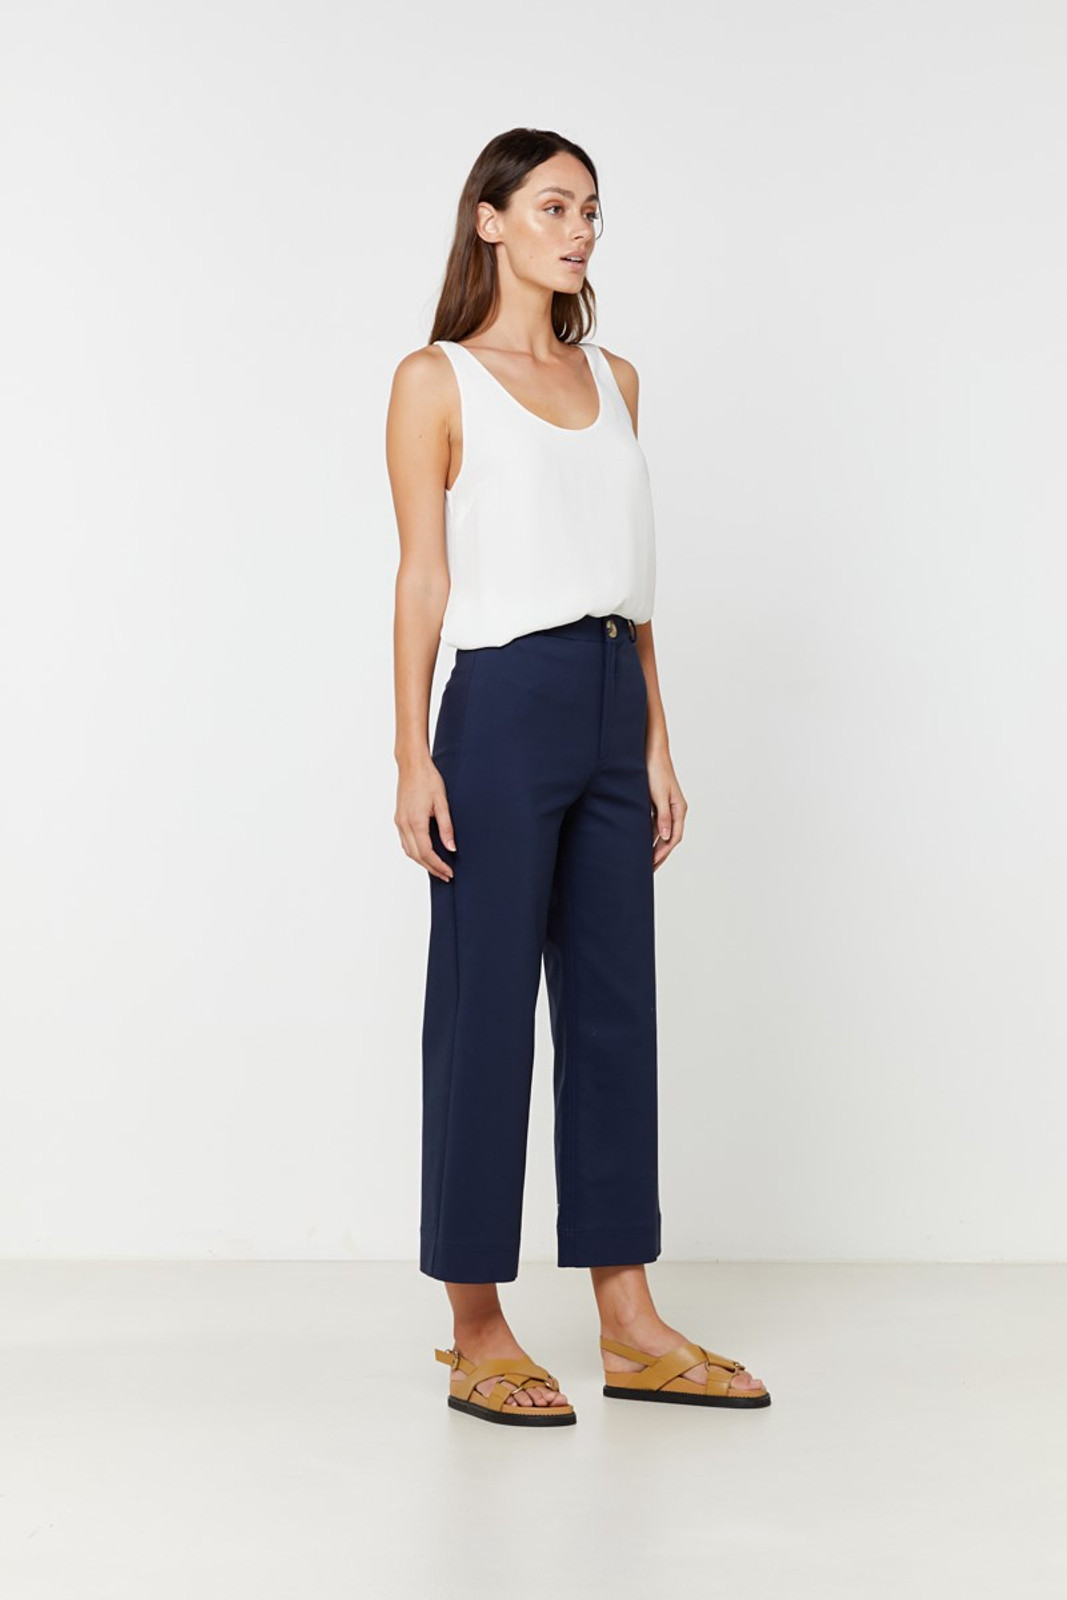 Elka Collective Ingrid Pant Navy  4